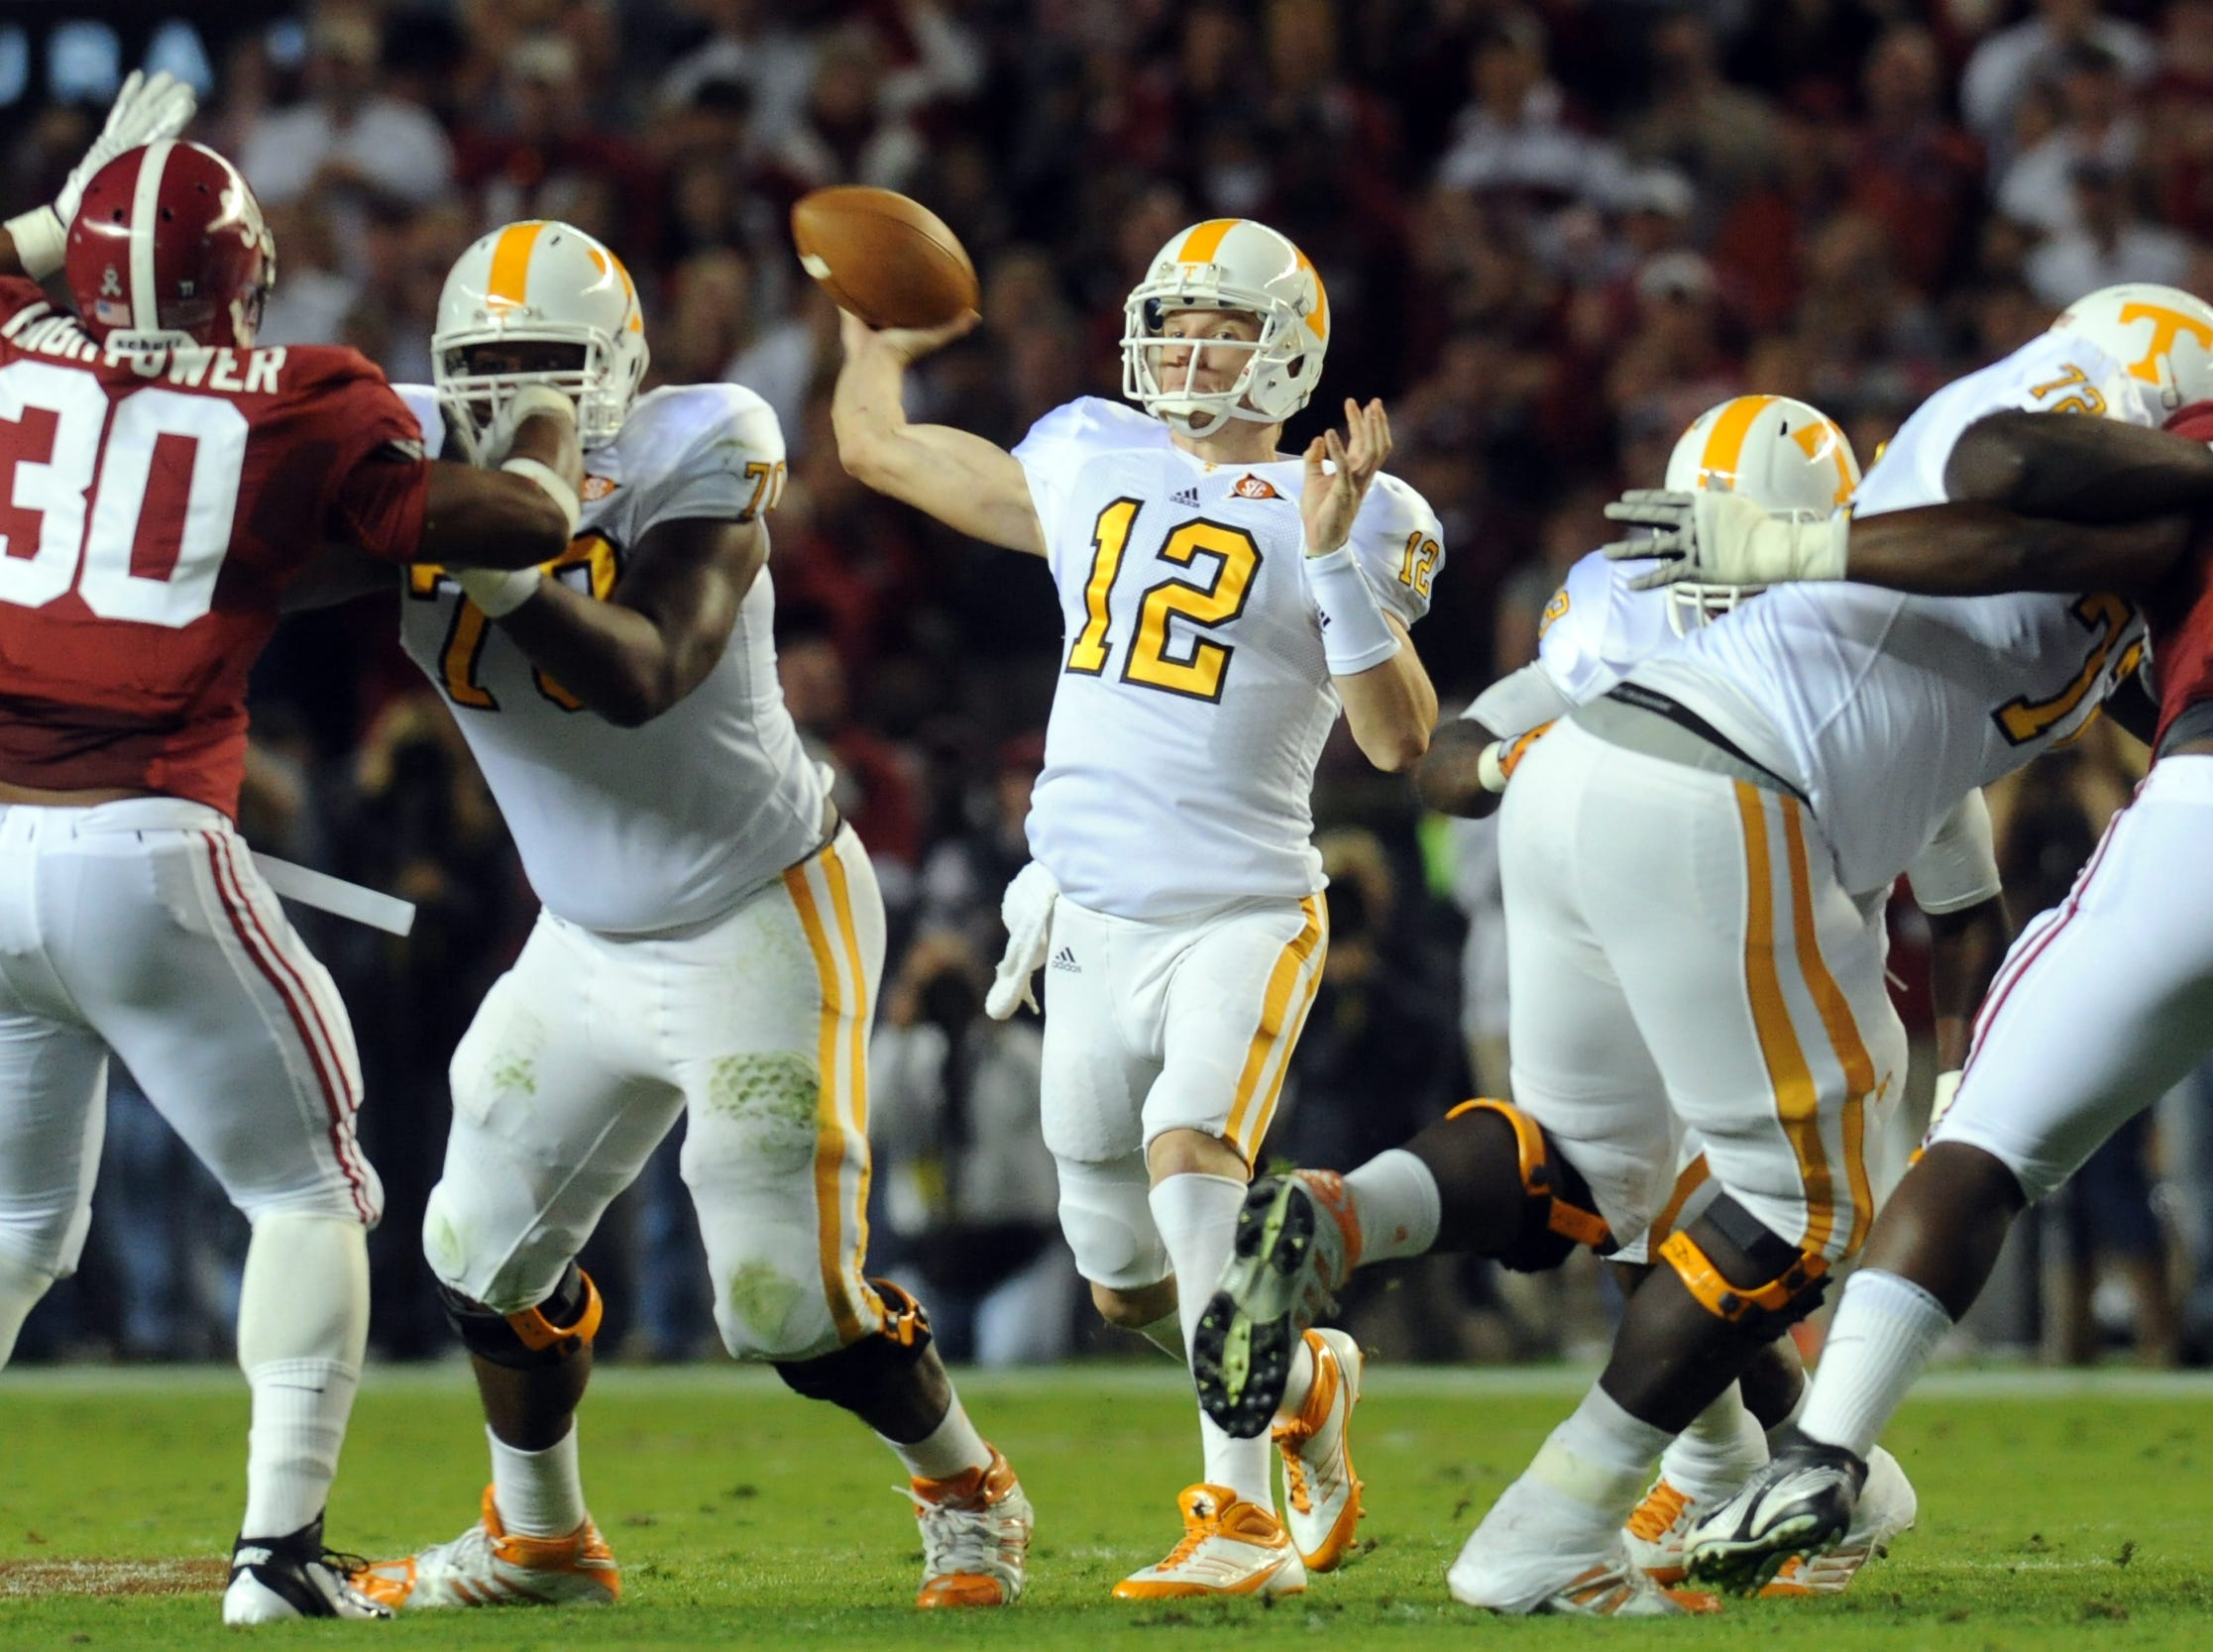 Tennessee quarterback Matt Simms (12) throws the ball during the game against Alabama at Bryant-Denny Stadium in Tuscaloosa, Ala., Saturday, Oct. 22, 2011.